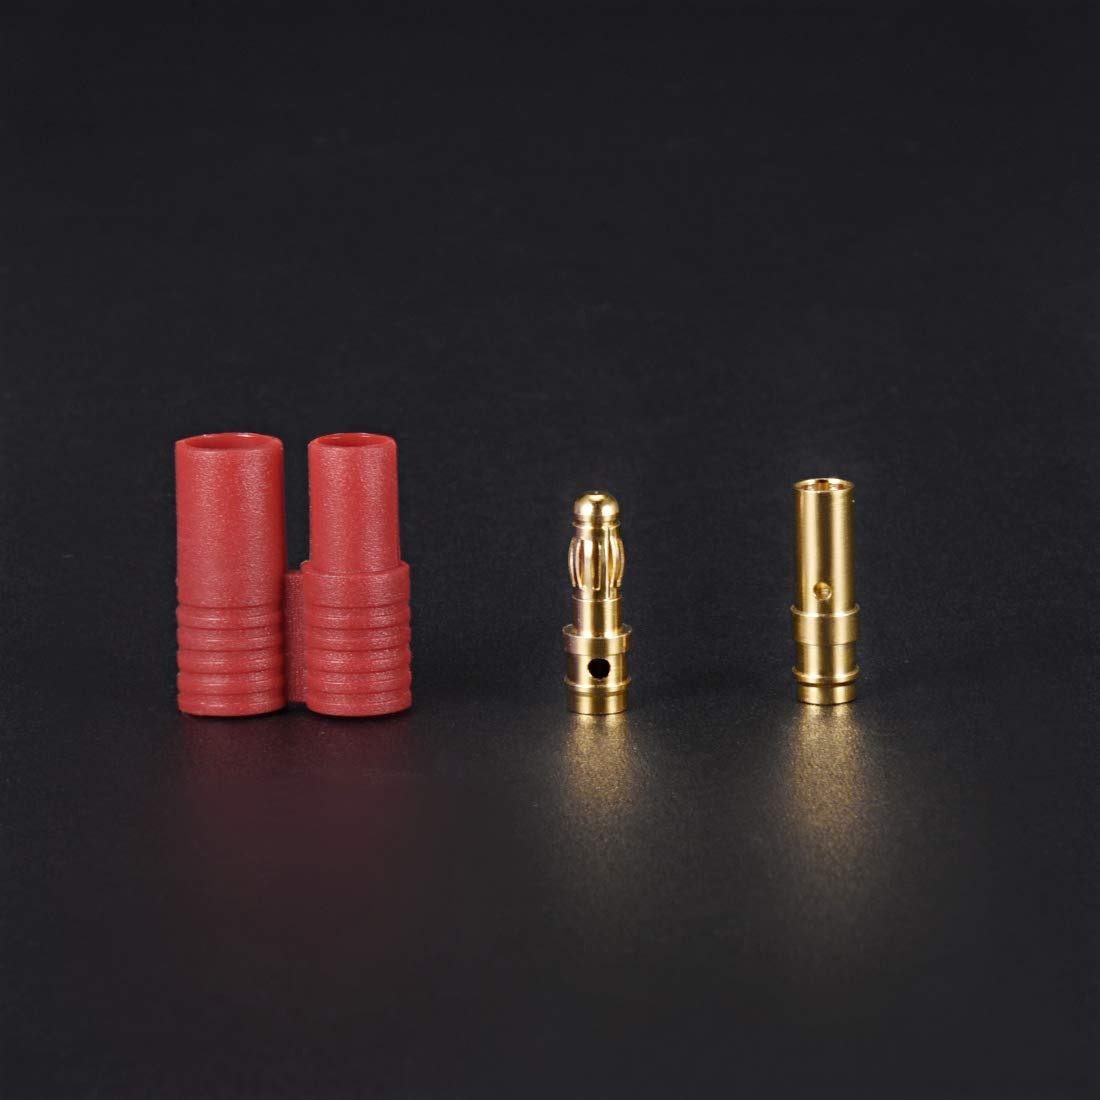 uxcell 3.5mm Bullets Connector Gold EC3 Connector Plugs RC LIPO Battery ESC Motor DIY Parts Device End/&Battery End 2Sets